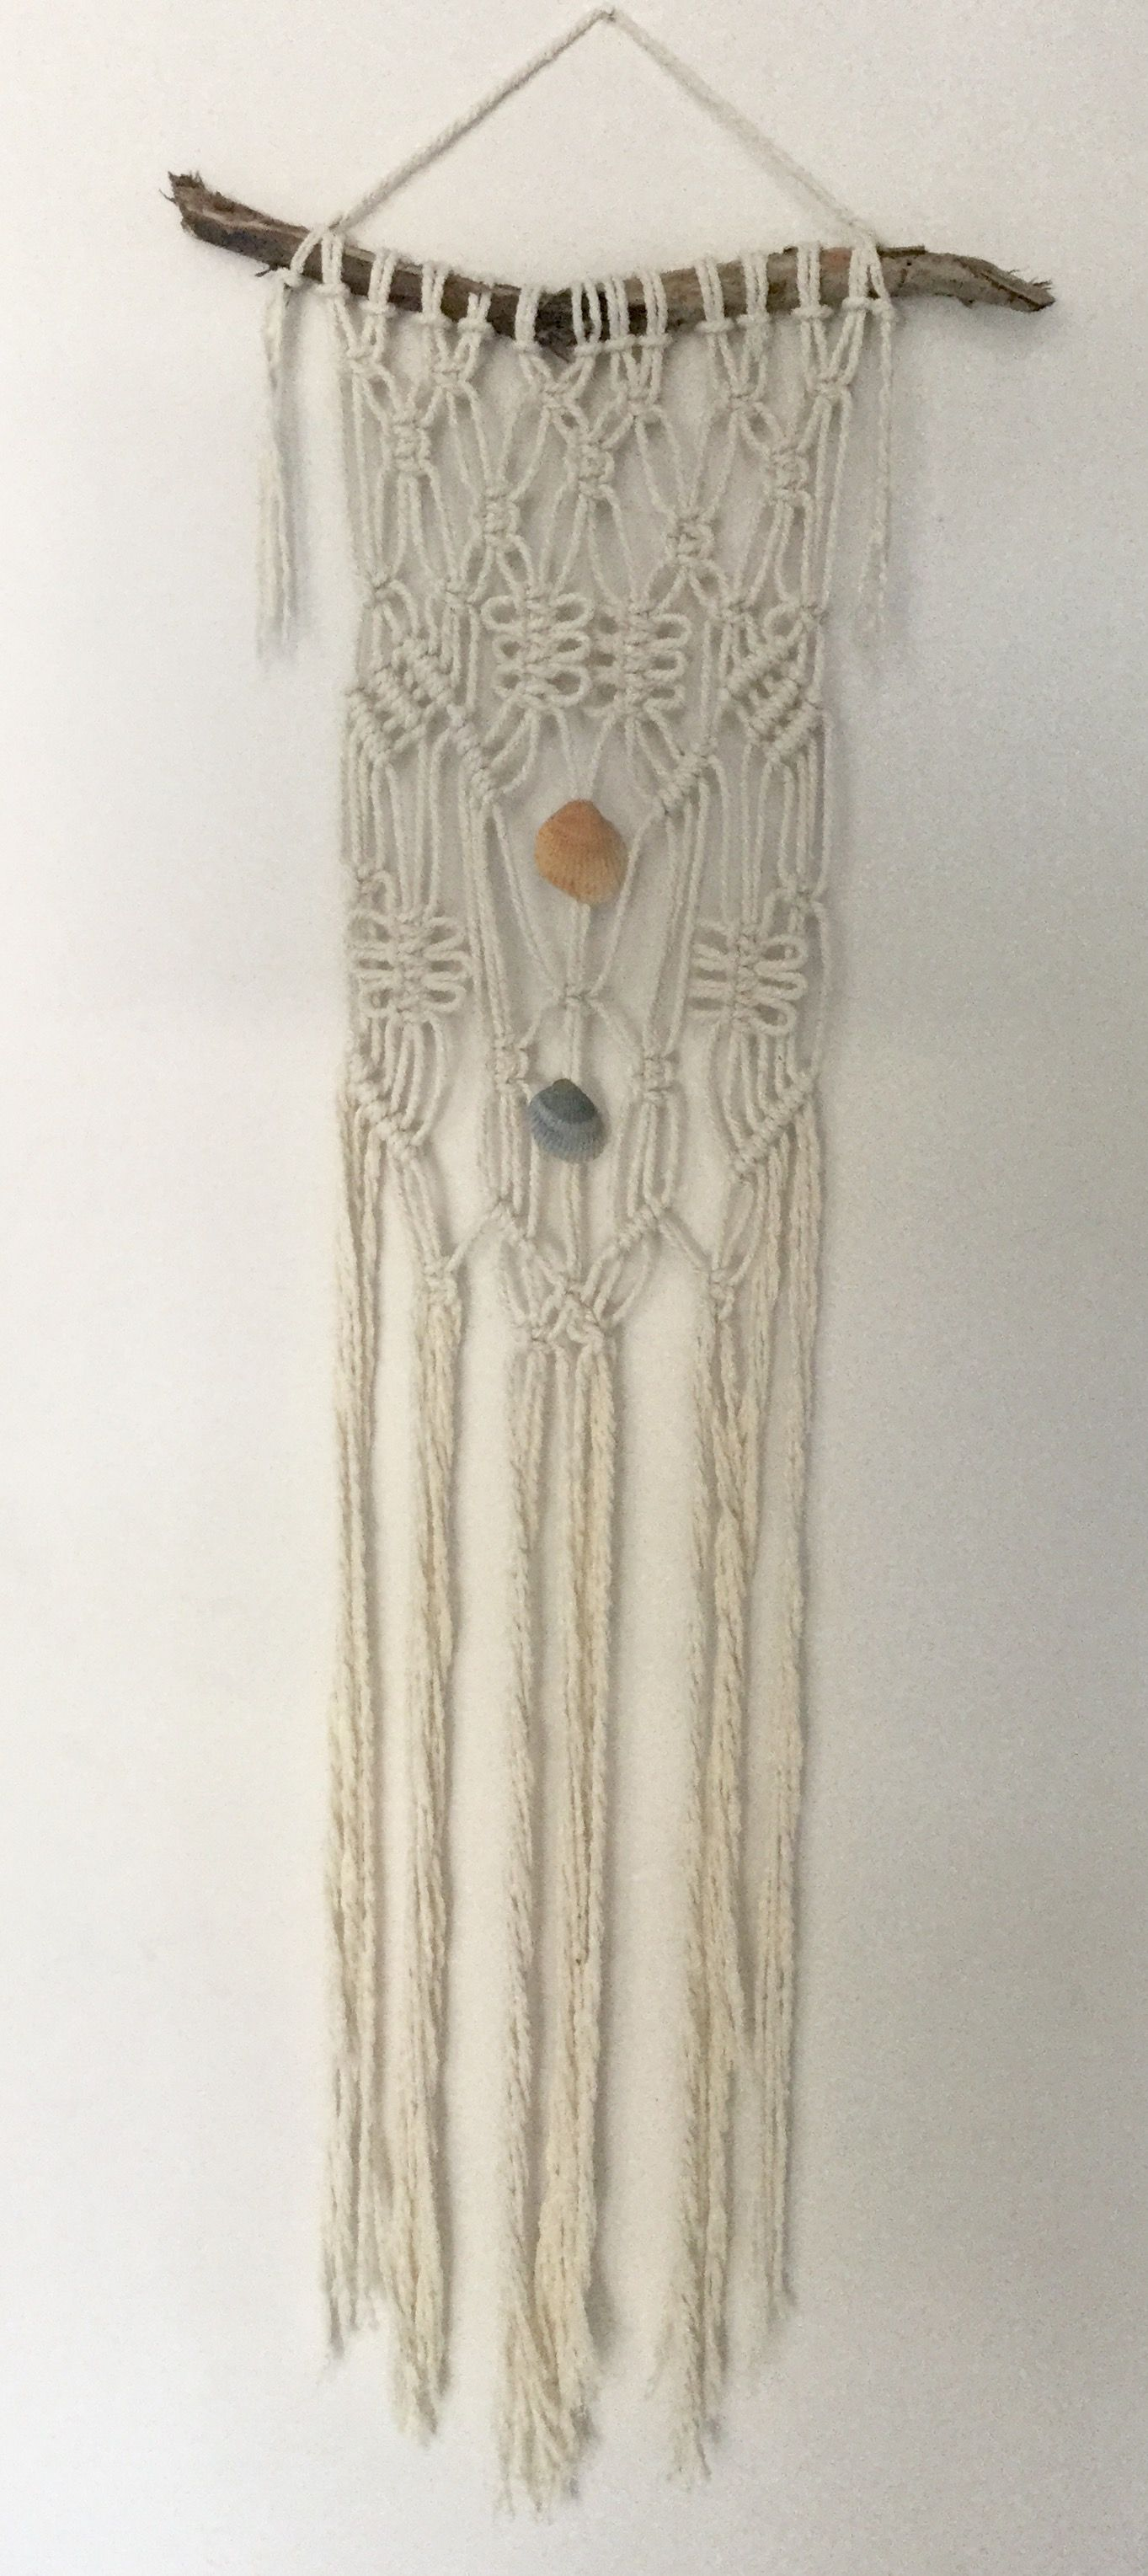 Driftwood Wall Hanging white macrame wall hanging on driftwood | yarn banner | wall decor